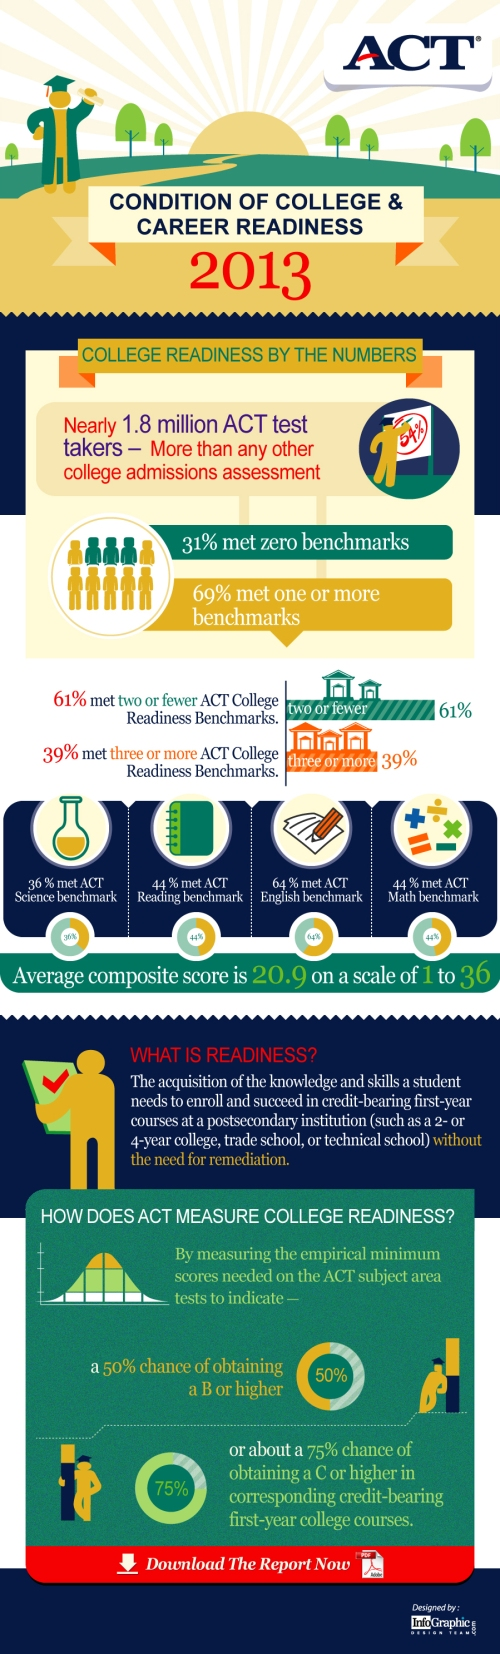 ACT College Readiness 2013